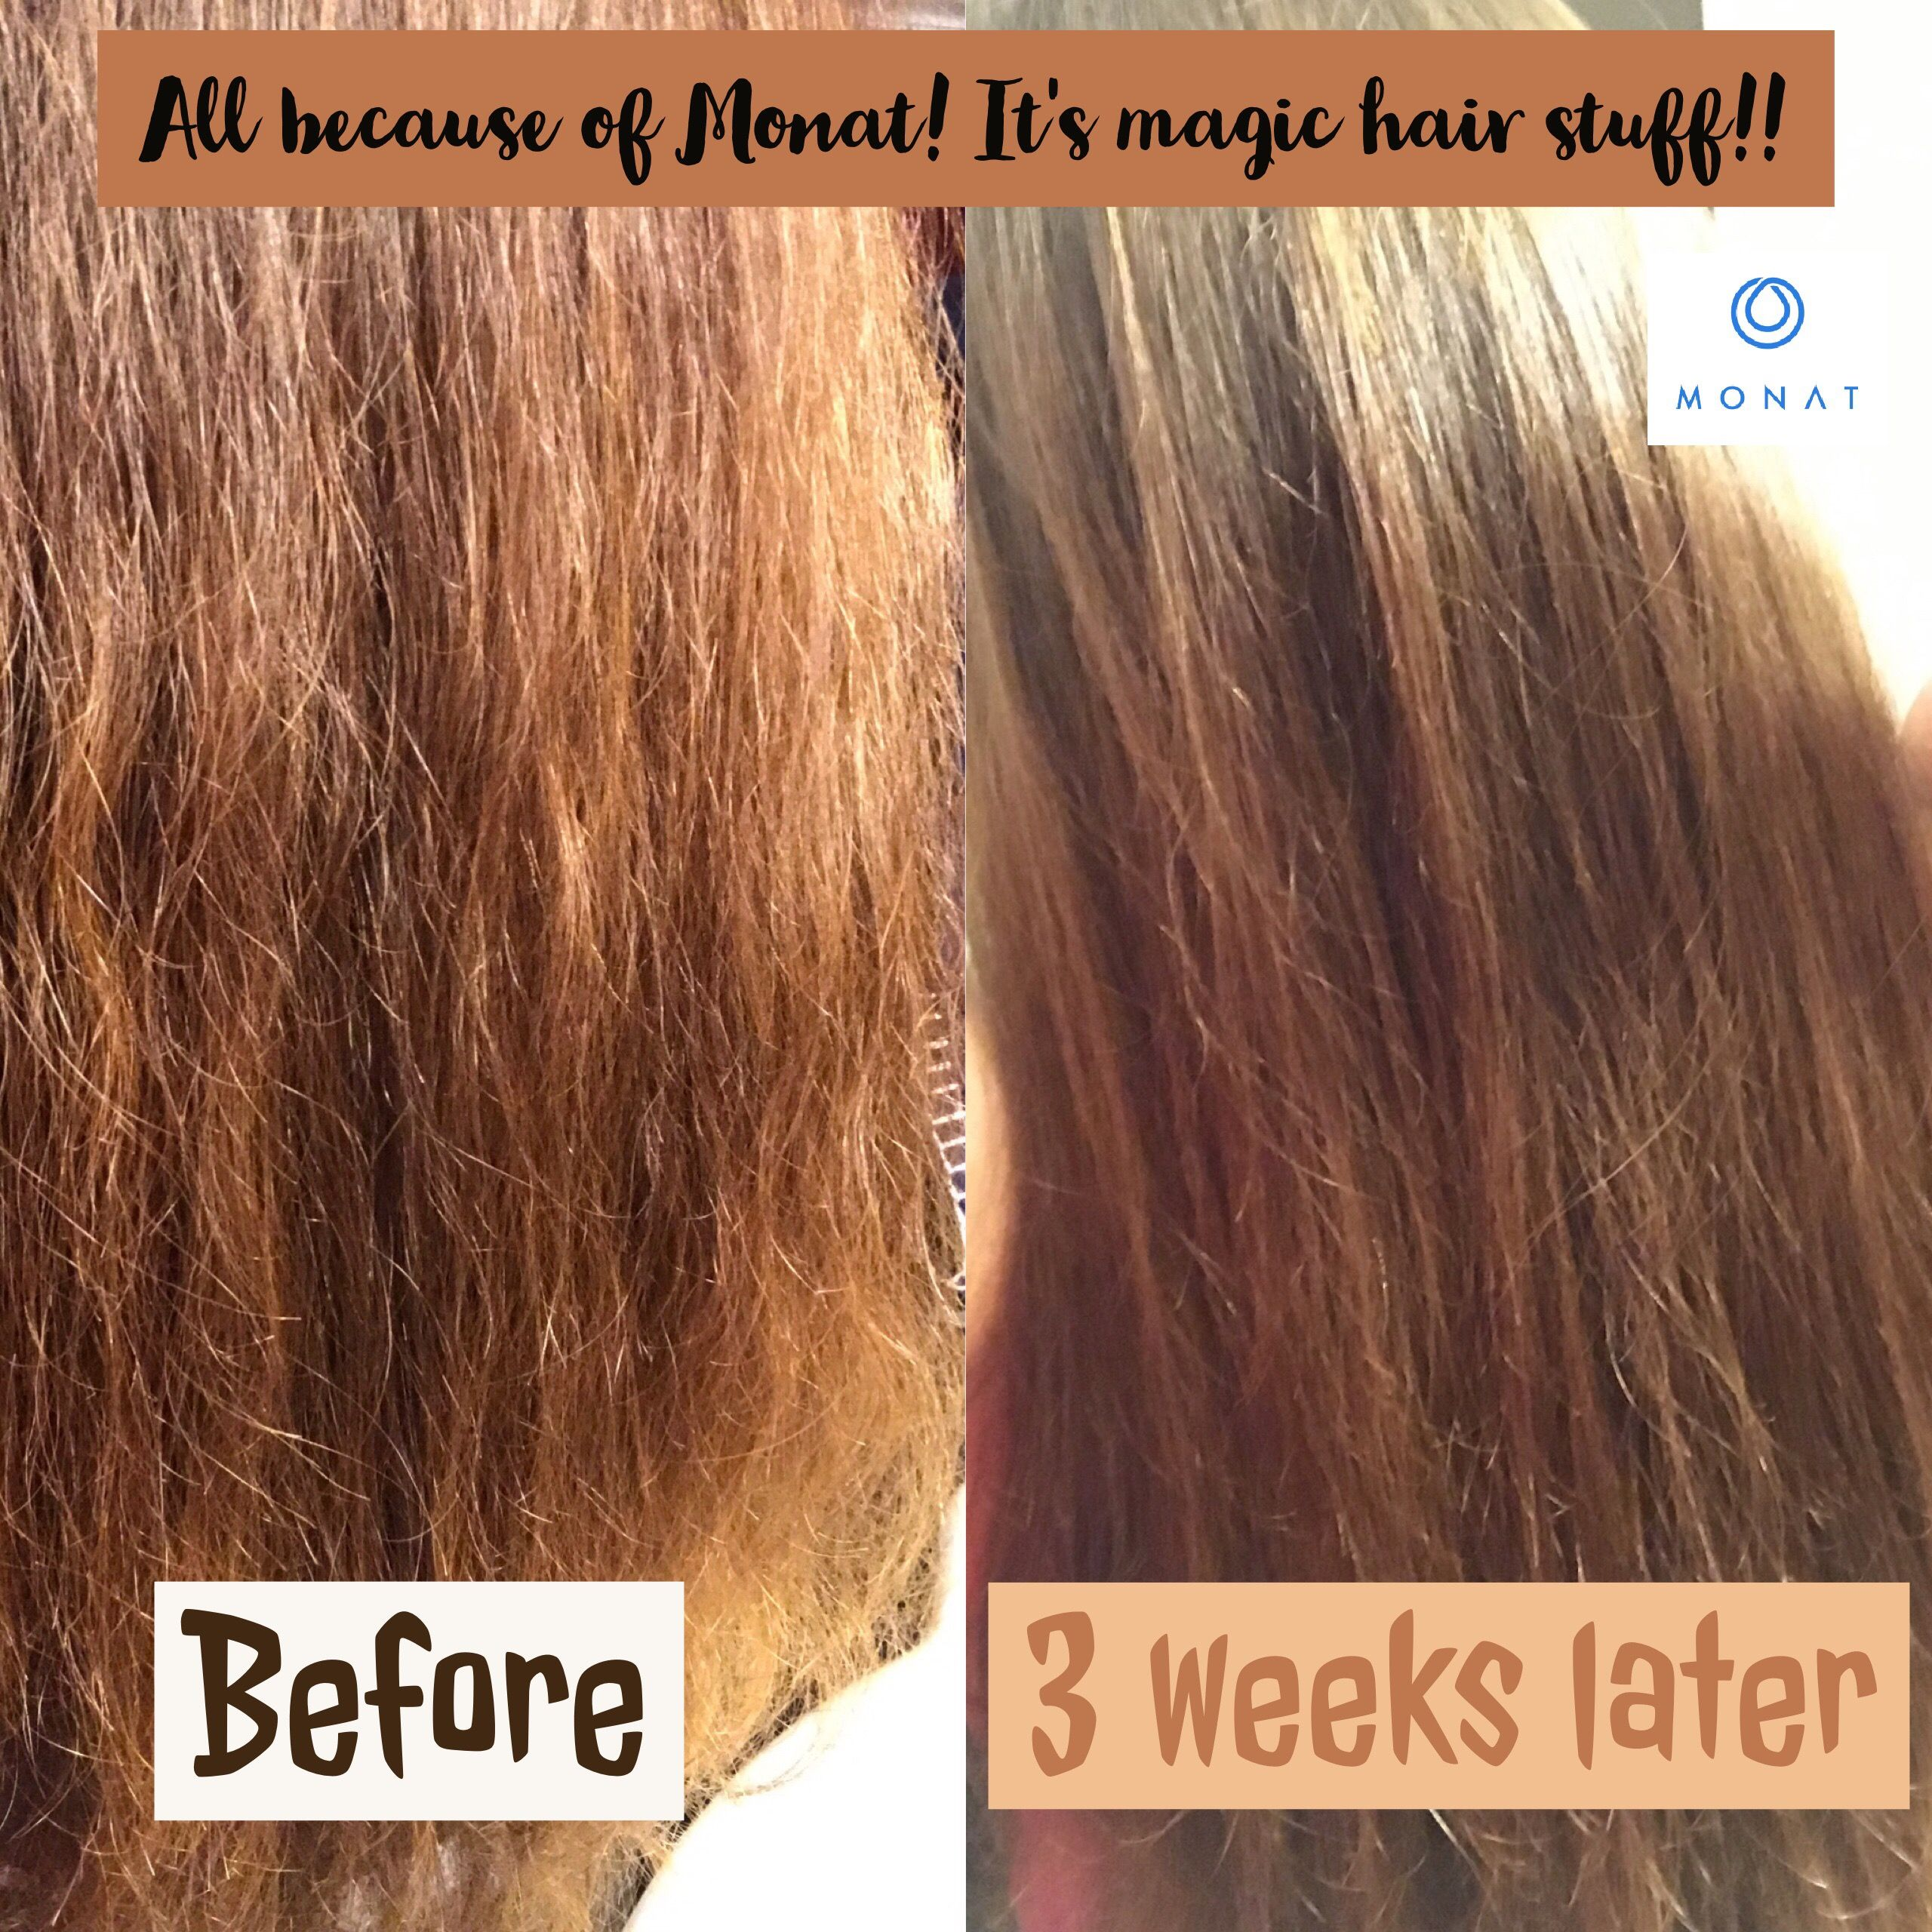 Magic shampoo Skin care hair care, Magic hair, Monat hair